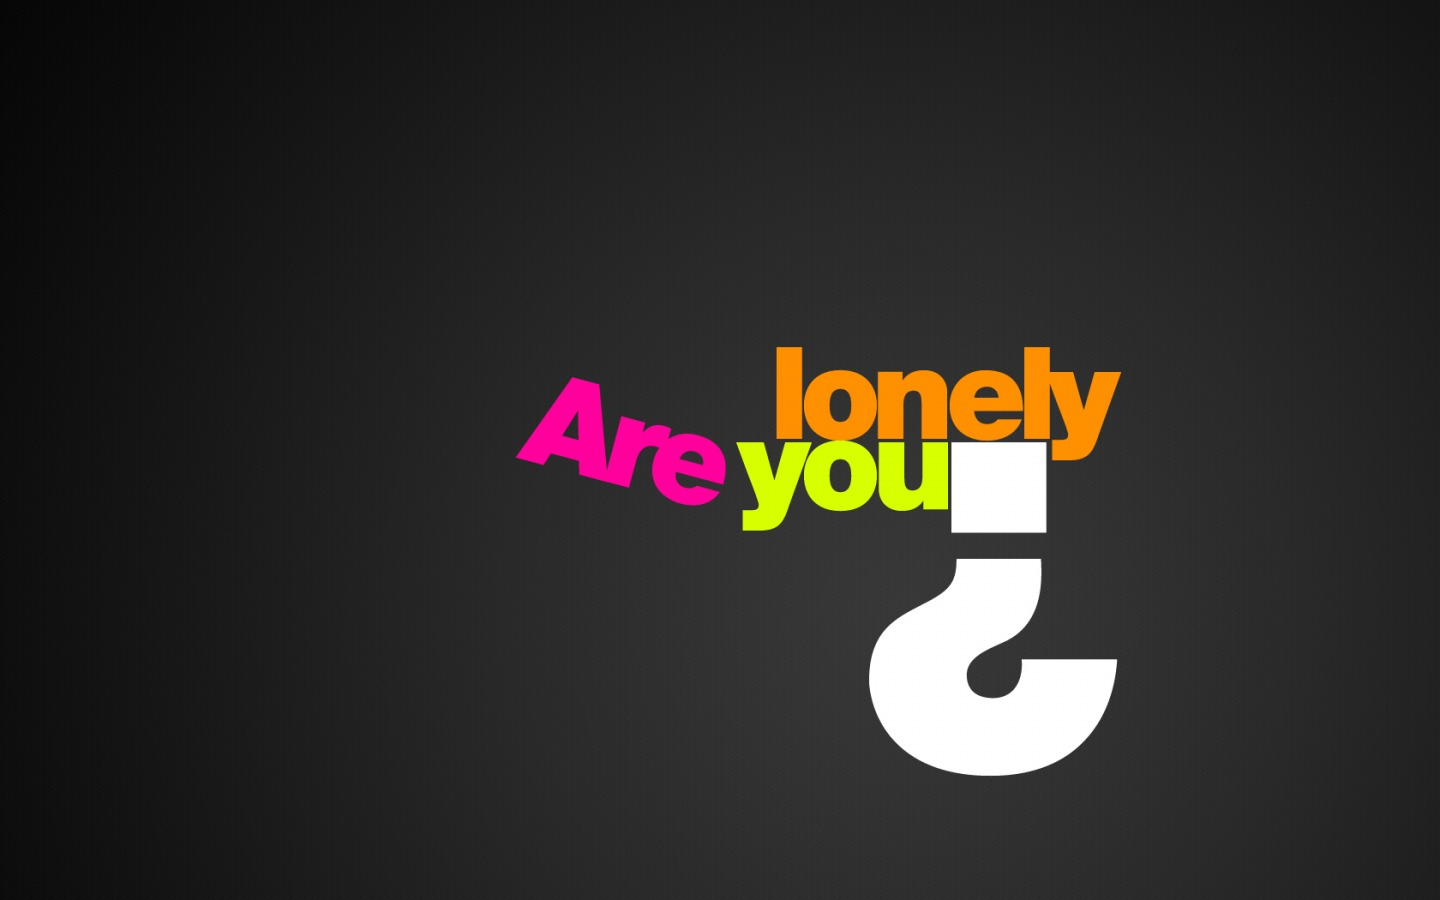 Are You Lonely Wallpaper Miscellaneous Other Wallpapers in jpg